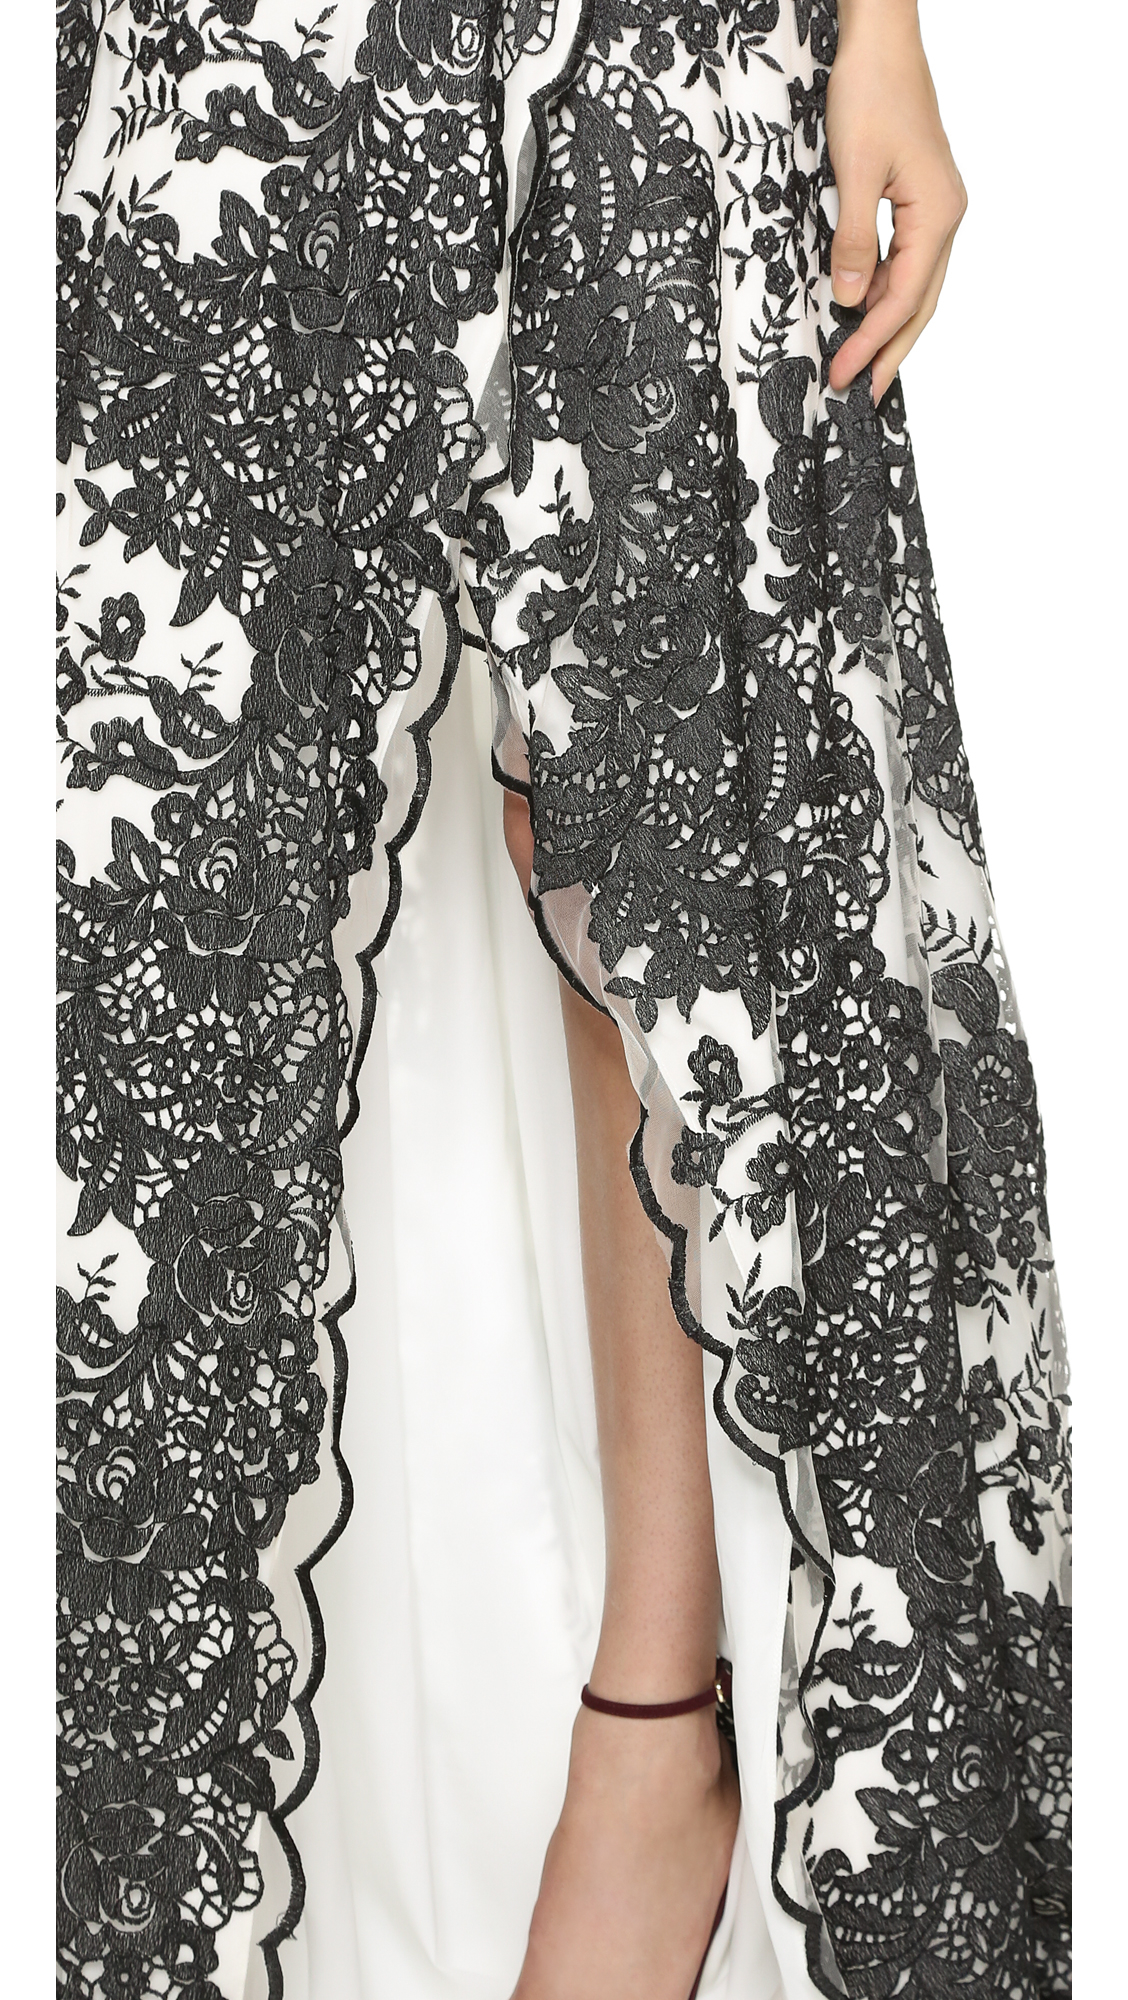 lyst notte by marchesa contrast lace gown black white